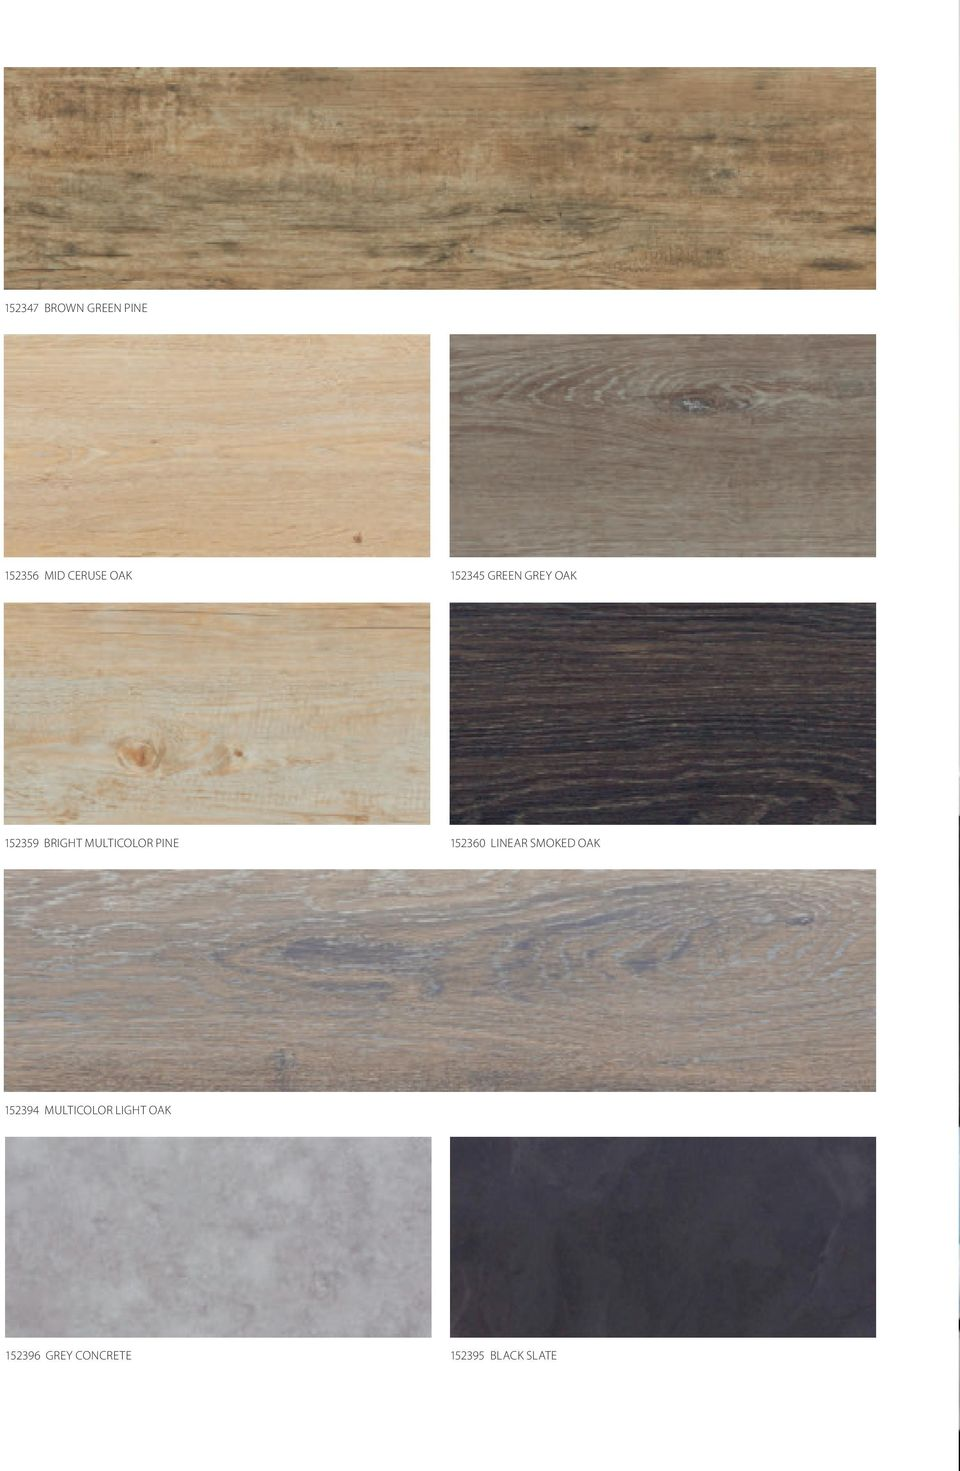 PINE 152360 LINEAR SMOKED OAK 152394 MULTICOLOR